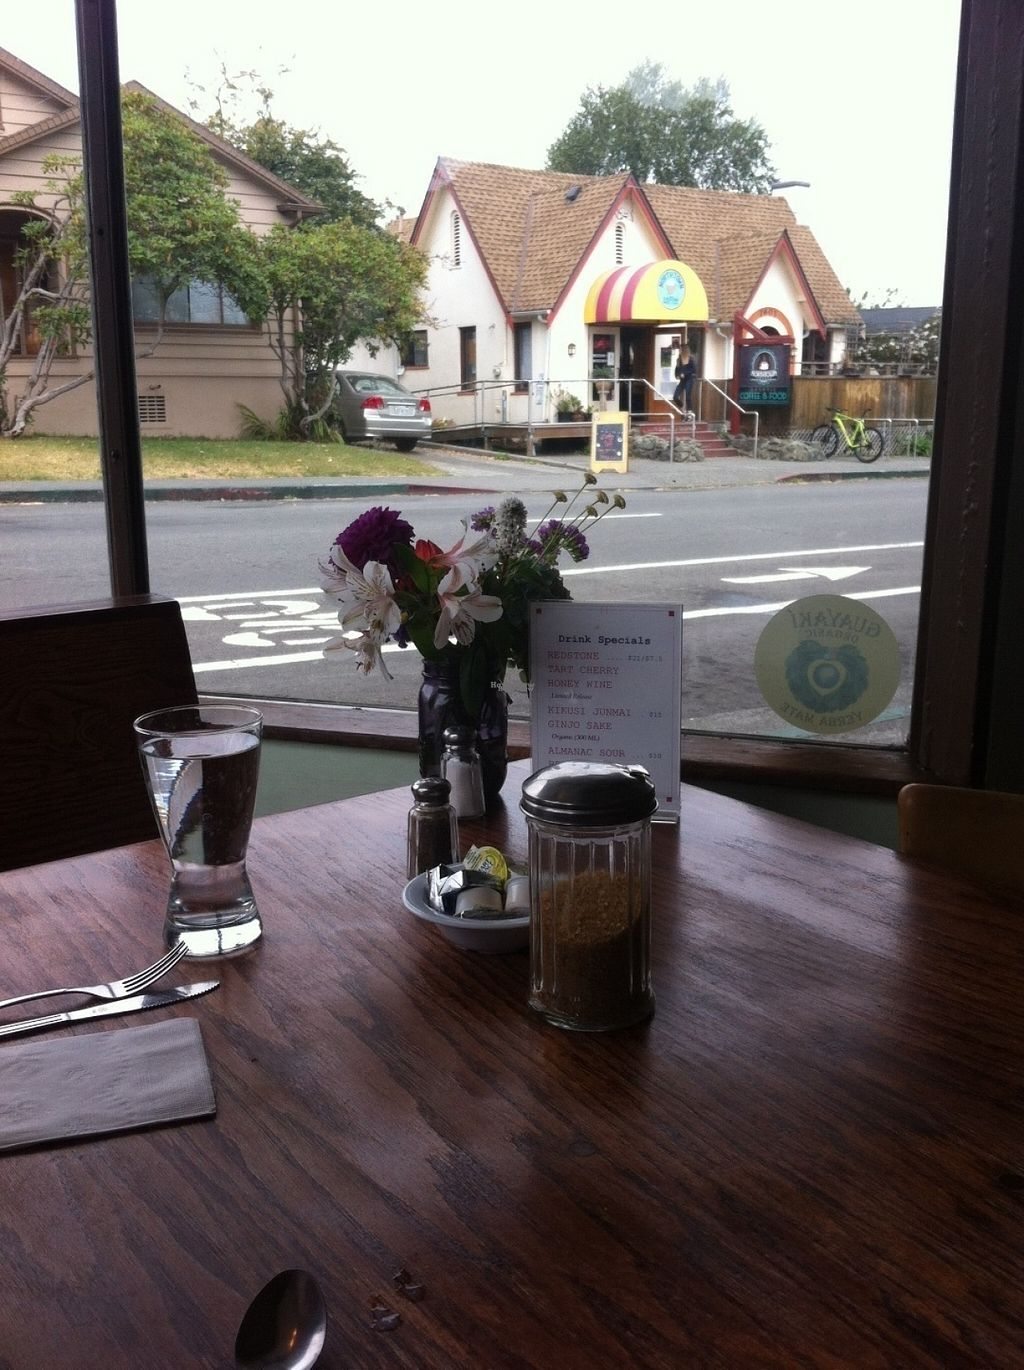 """Photo of Wildflower Cafe and Bakery  by <a href=""""/members/profile/BananaAddict"""">BananaAddict</a> <br/>View from corner table <br/> August 17, 2016  - <a href='/contact/abuse/image/1480/169369'>Report</a>"""